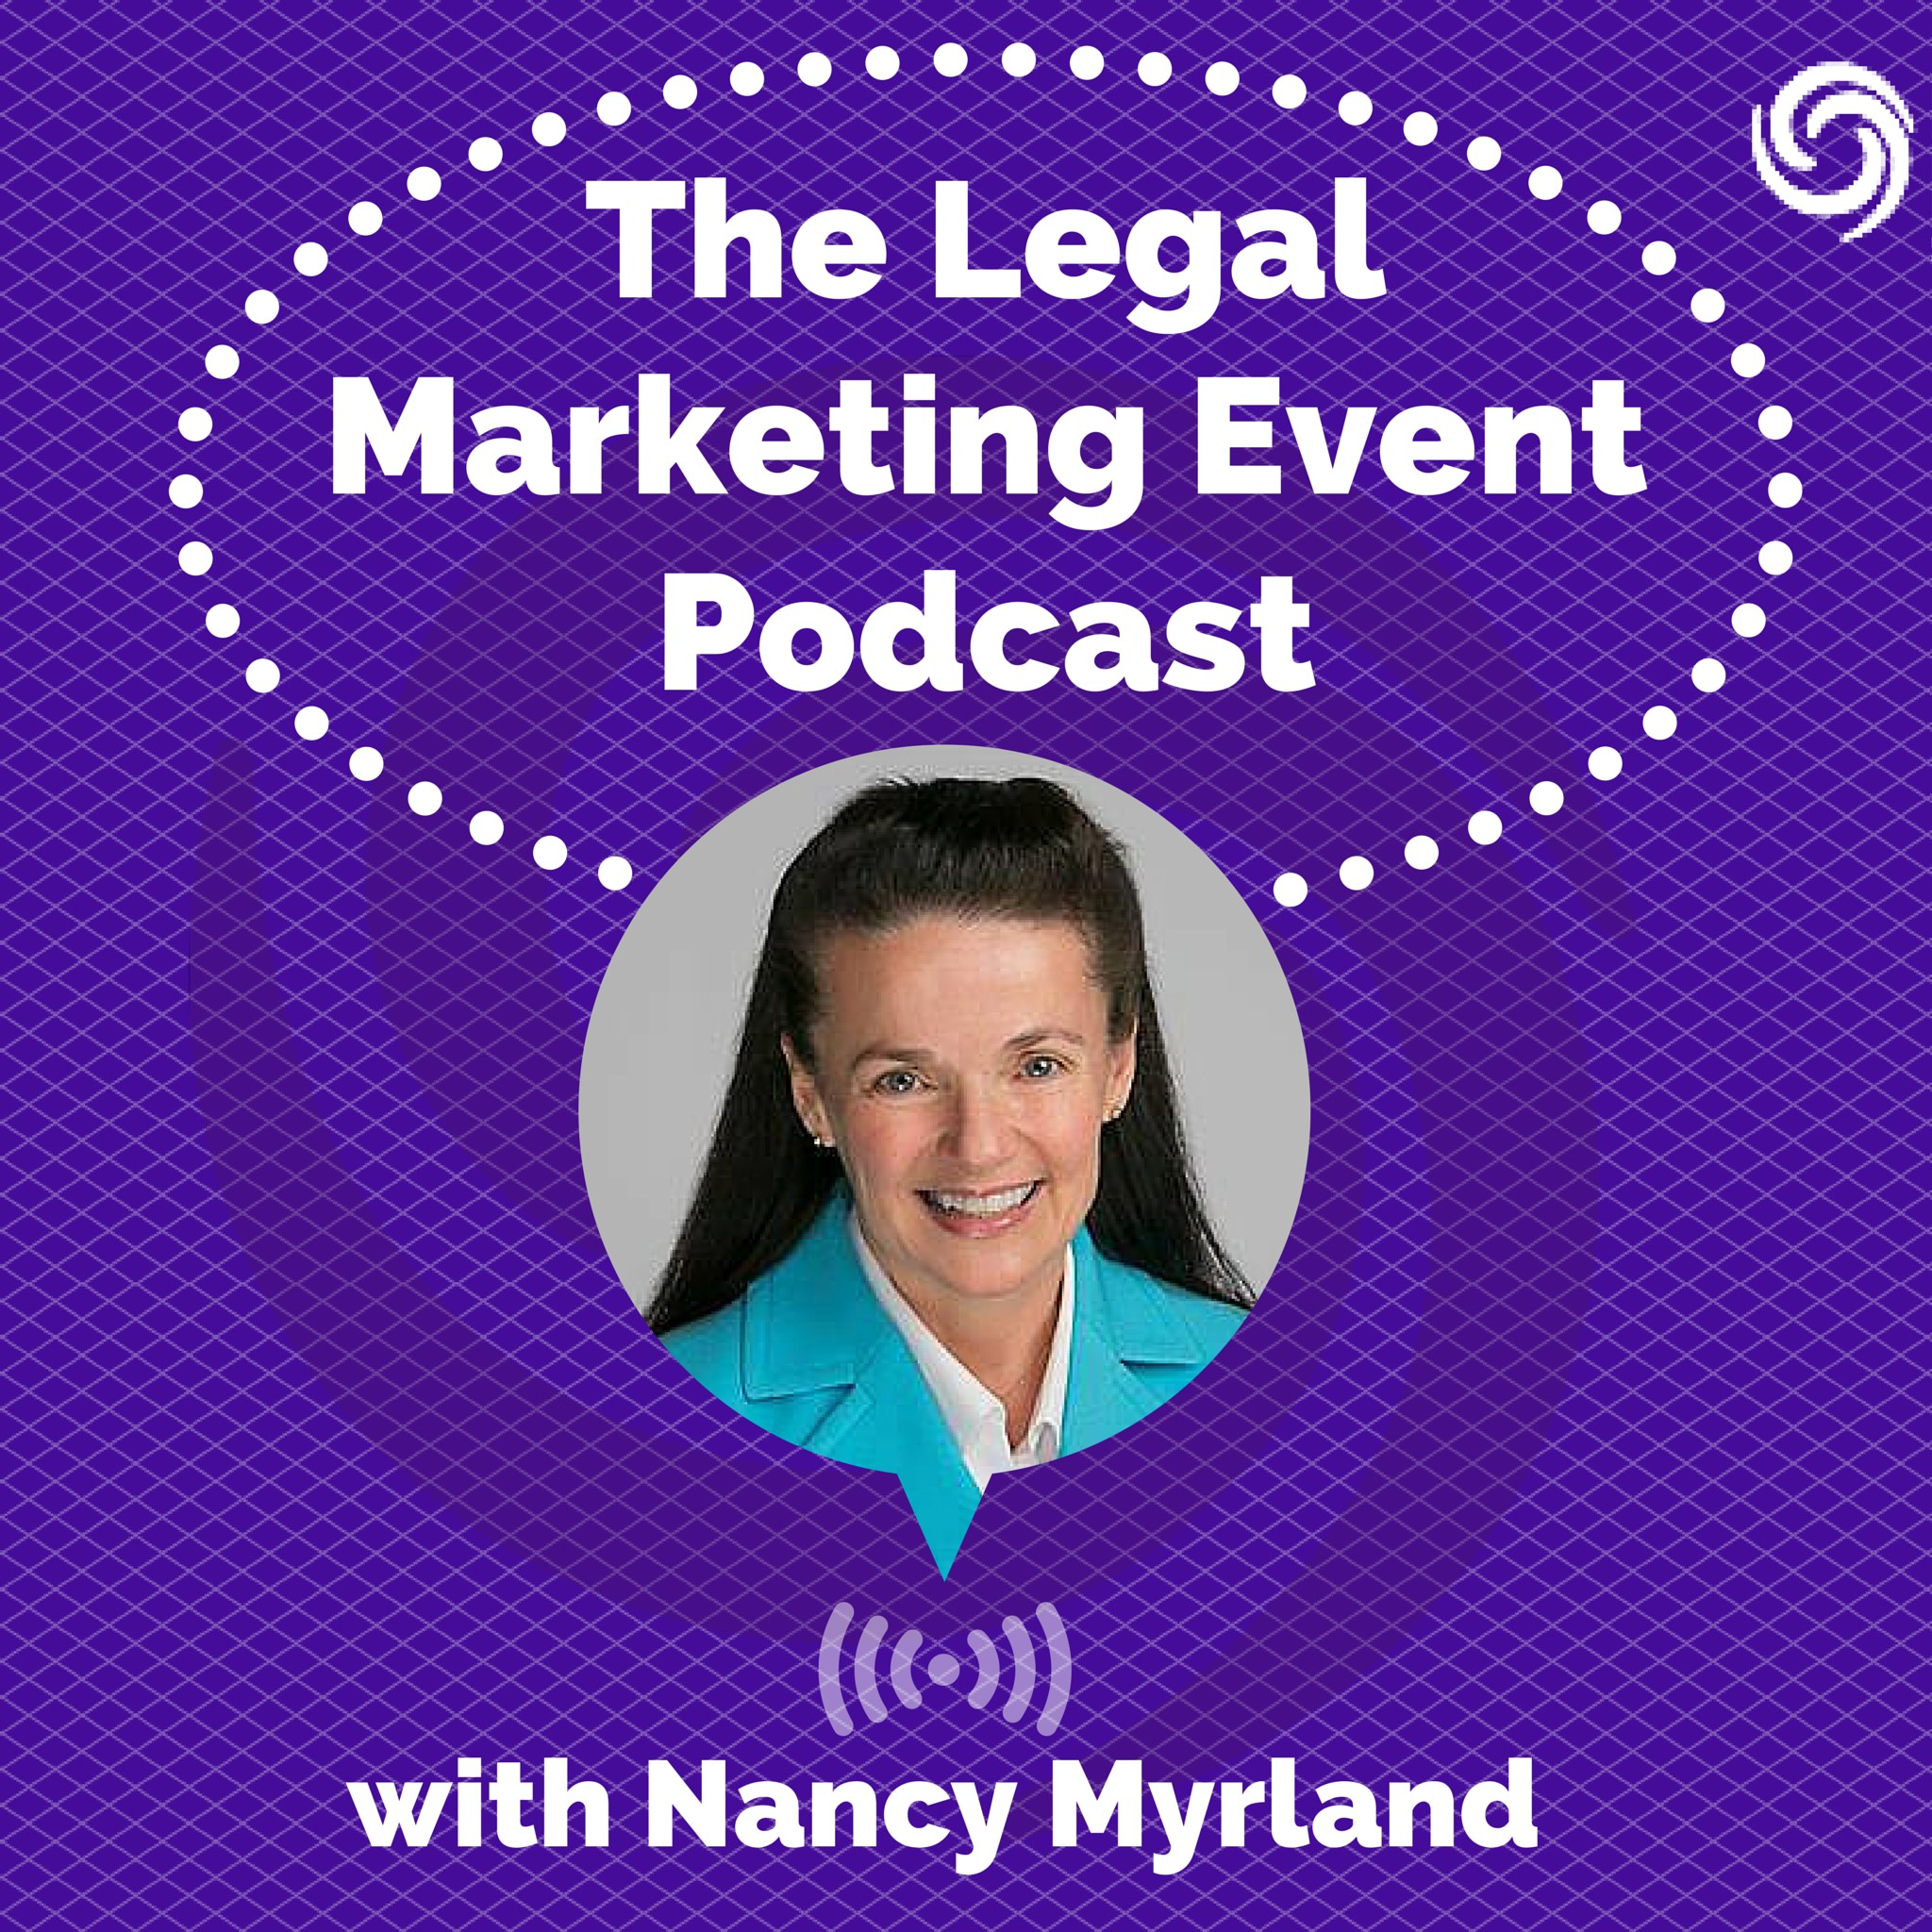 The Legal Marketing Event Podcast by Nancy Myrland